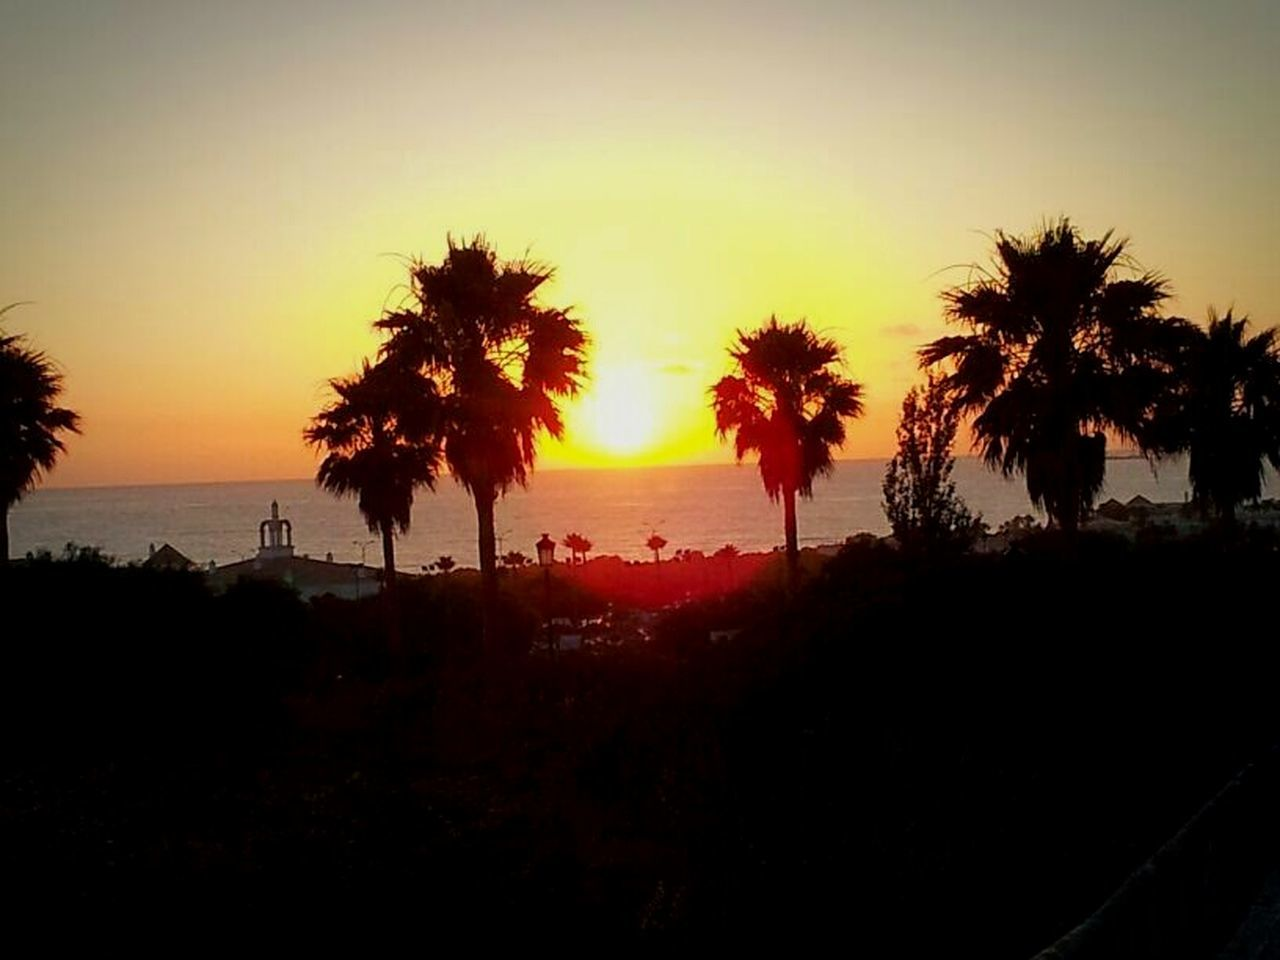 sunset, silhouette, tree, palm tree, beauty in nature, scenics, orange color, tranquility, nature, tranquil scene, no people, beach, sea, sky, outdoors, water, vacations, day